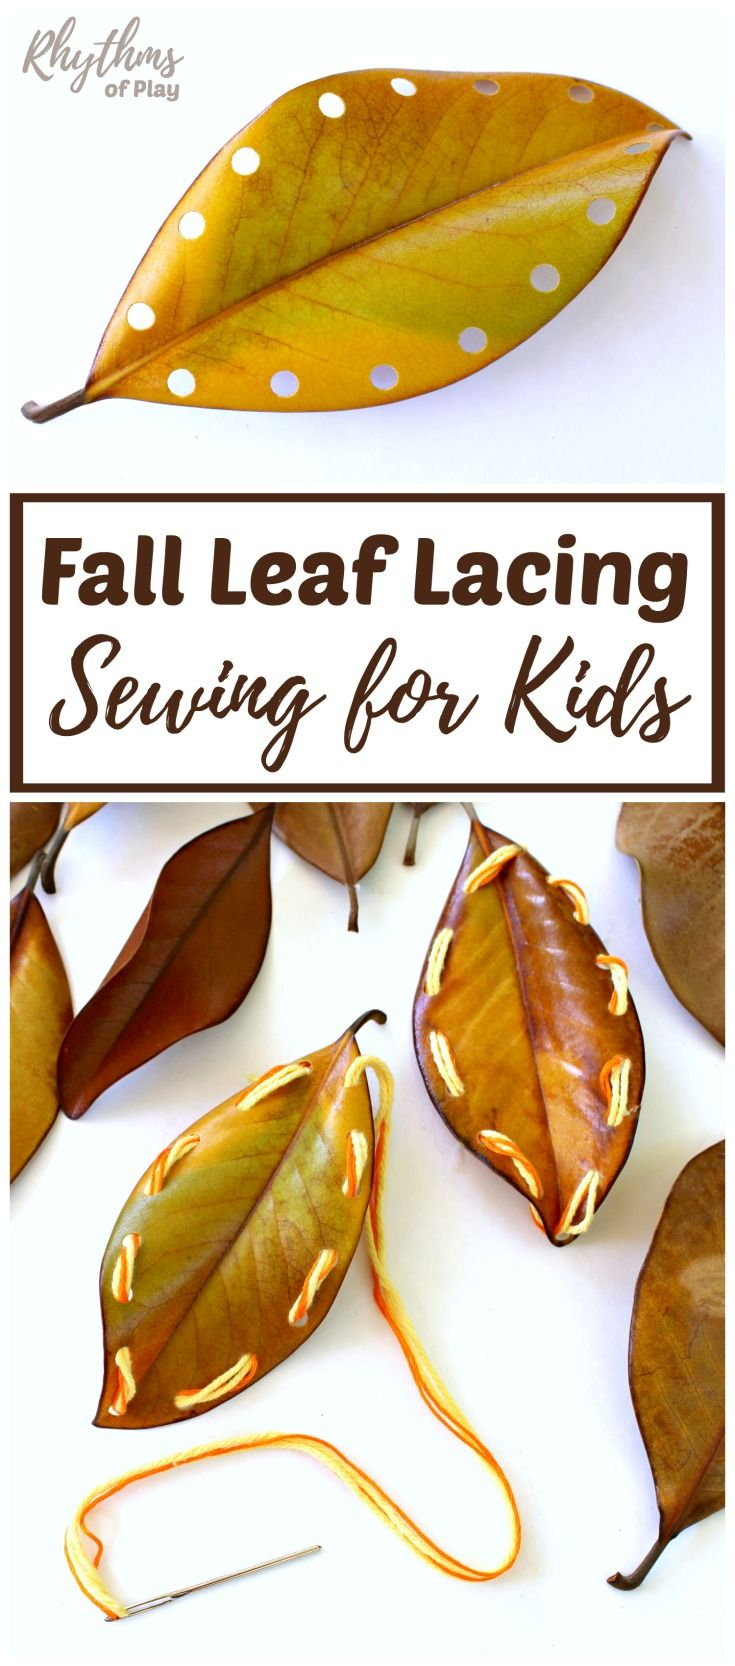 Fall leaf lacing is an easy beginning sewing project for kids. Learning to sew is a fun way to develop the fine motor muscles in the hand necessary for writing and more detailed hand work. Using sturdy fall leaves to practice sewing instead of lacing card